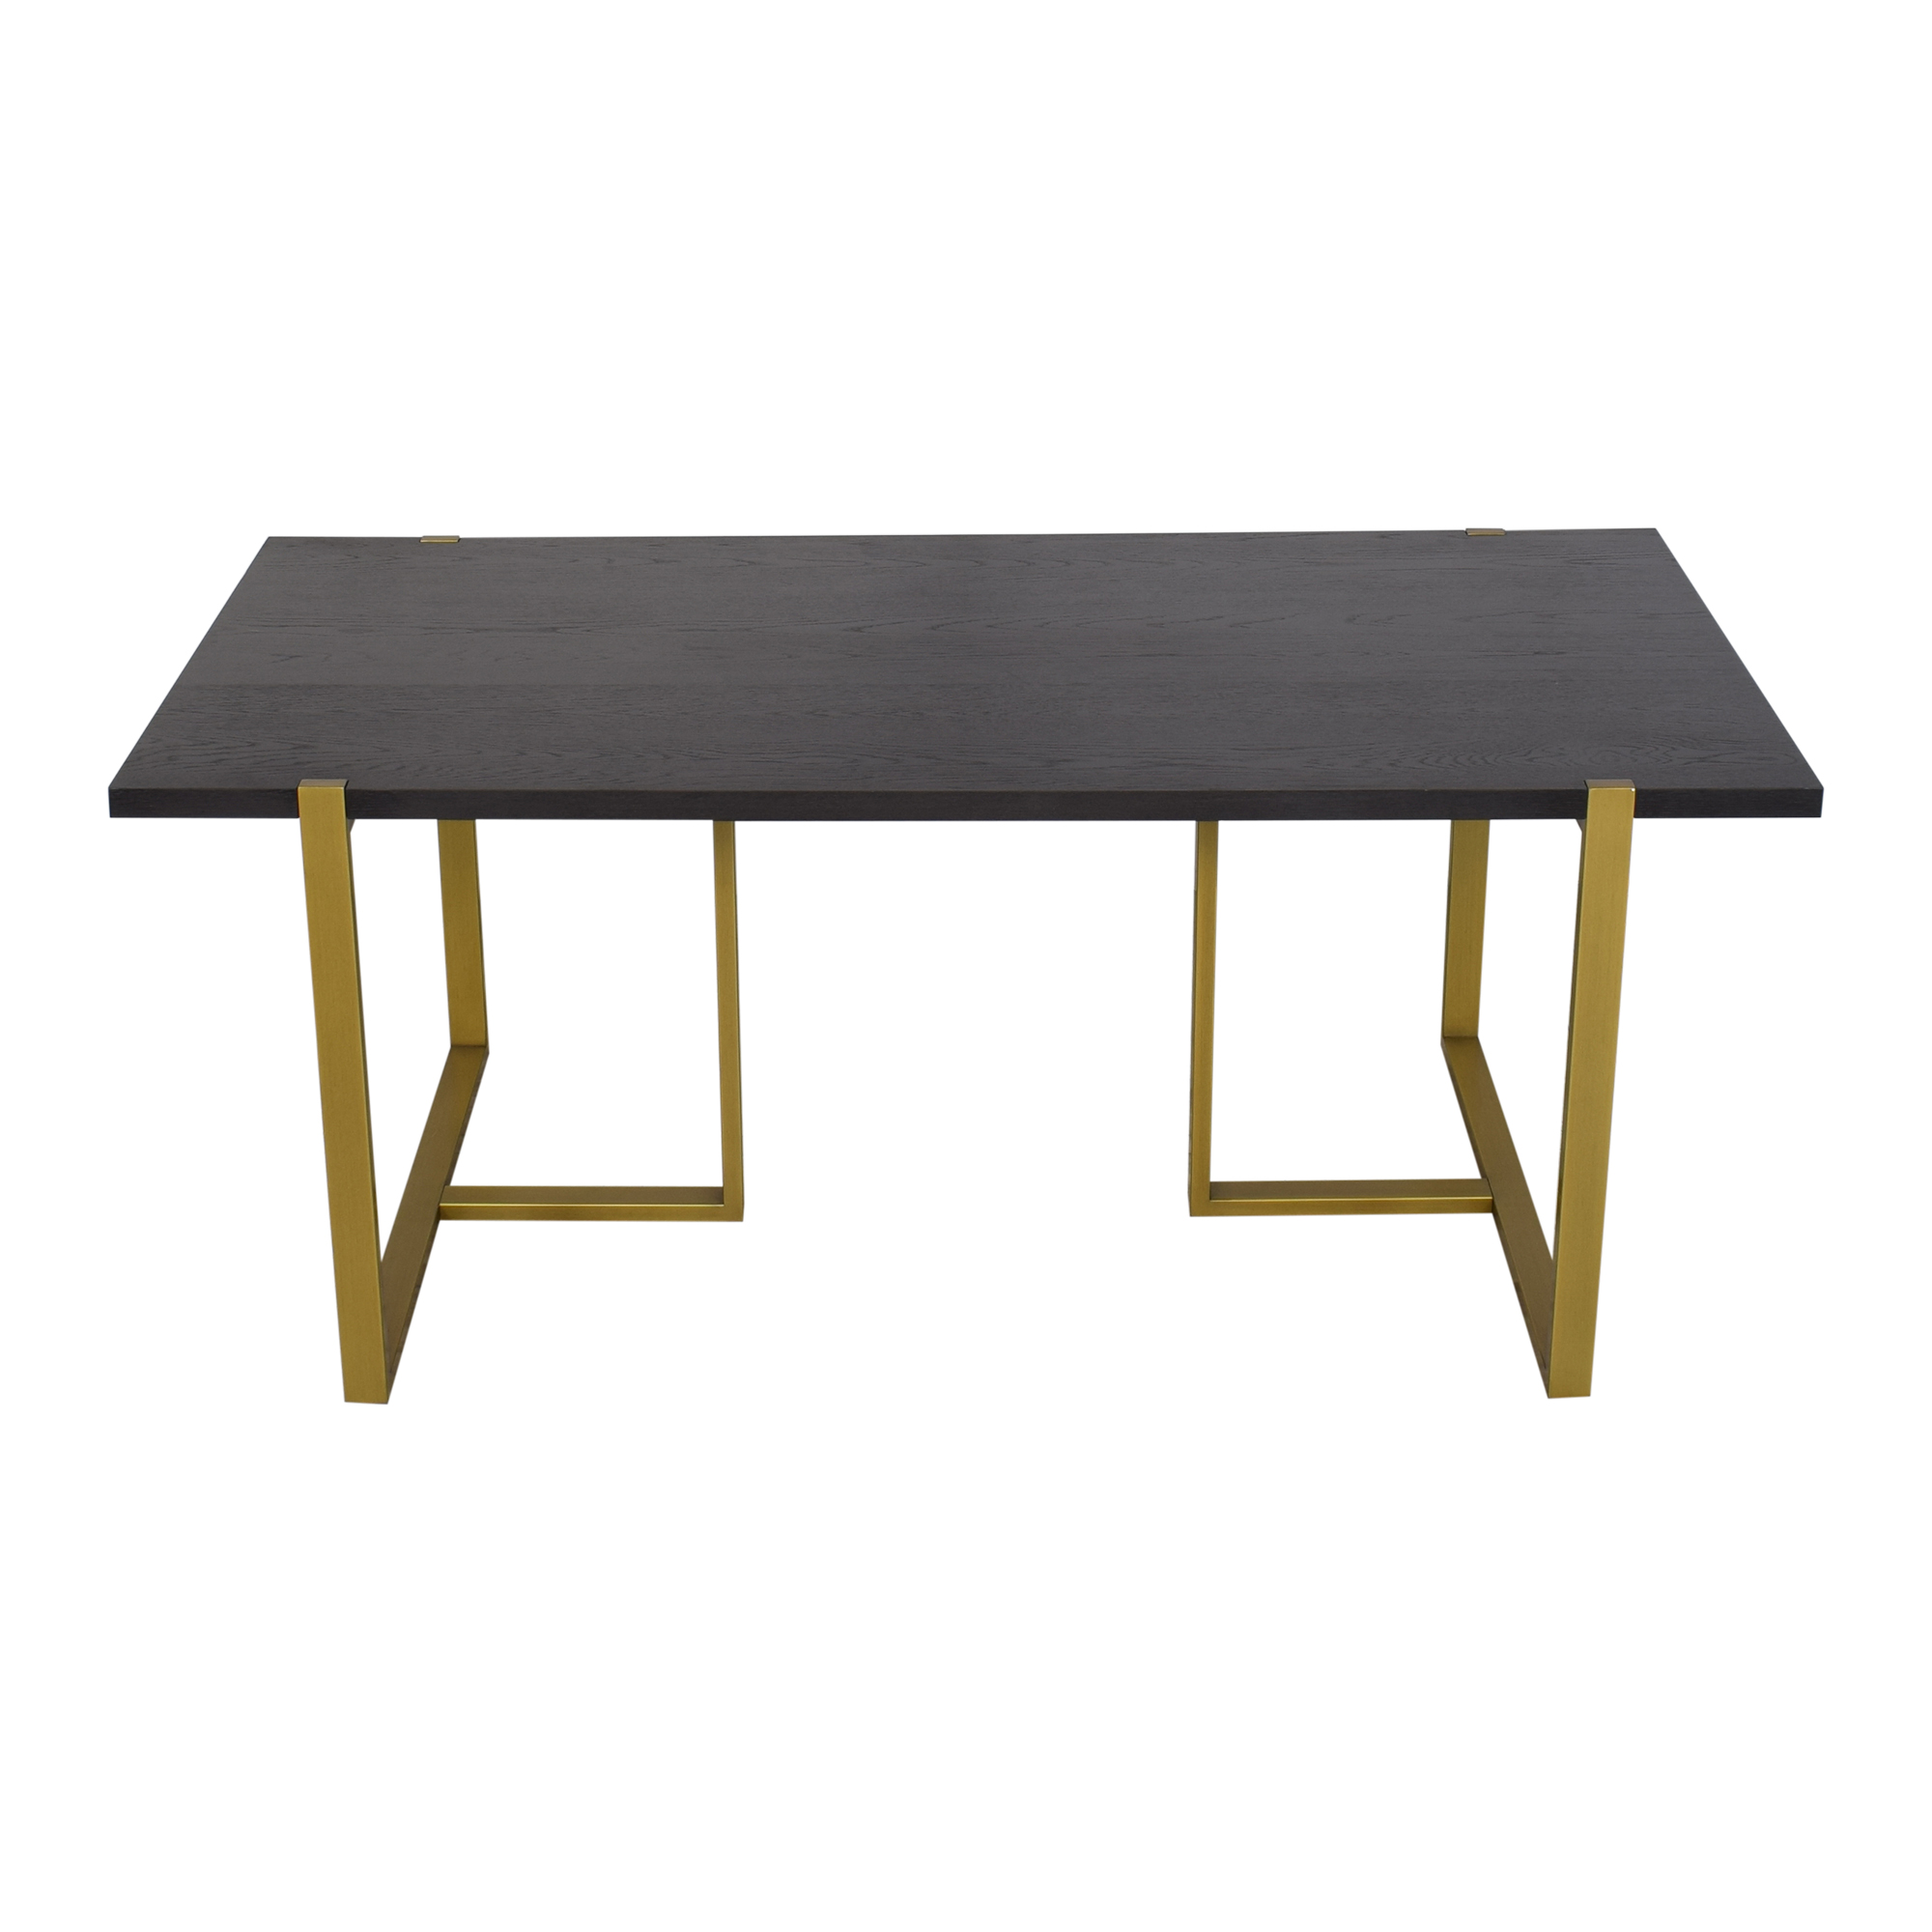 Article Article Oscuro Dining Table dimensions